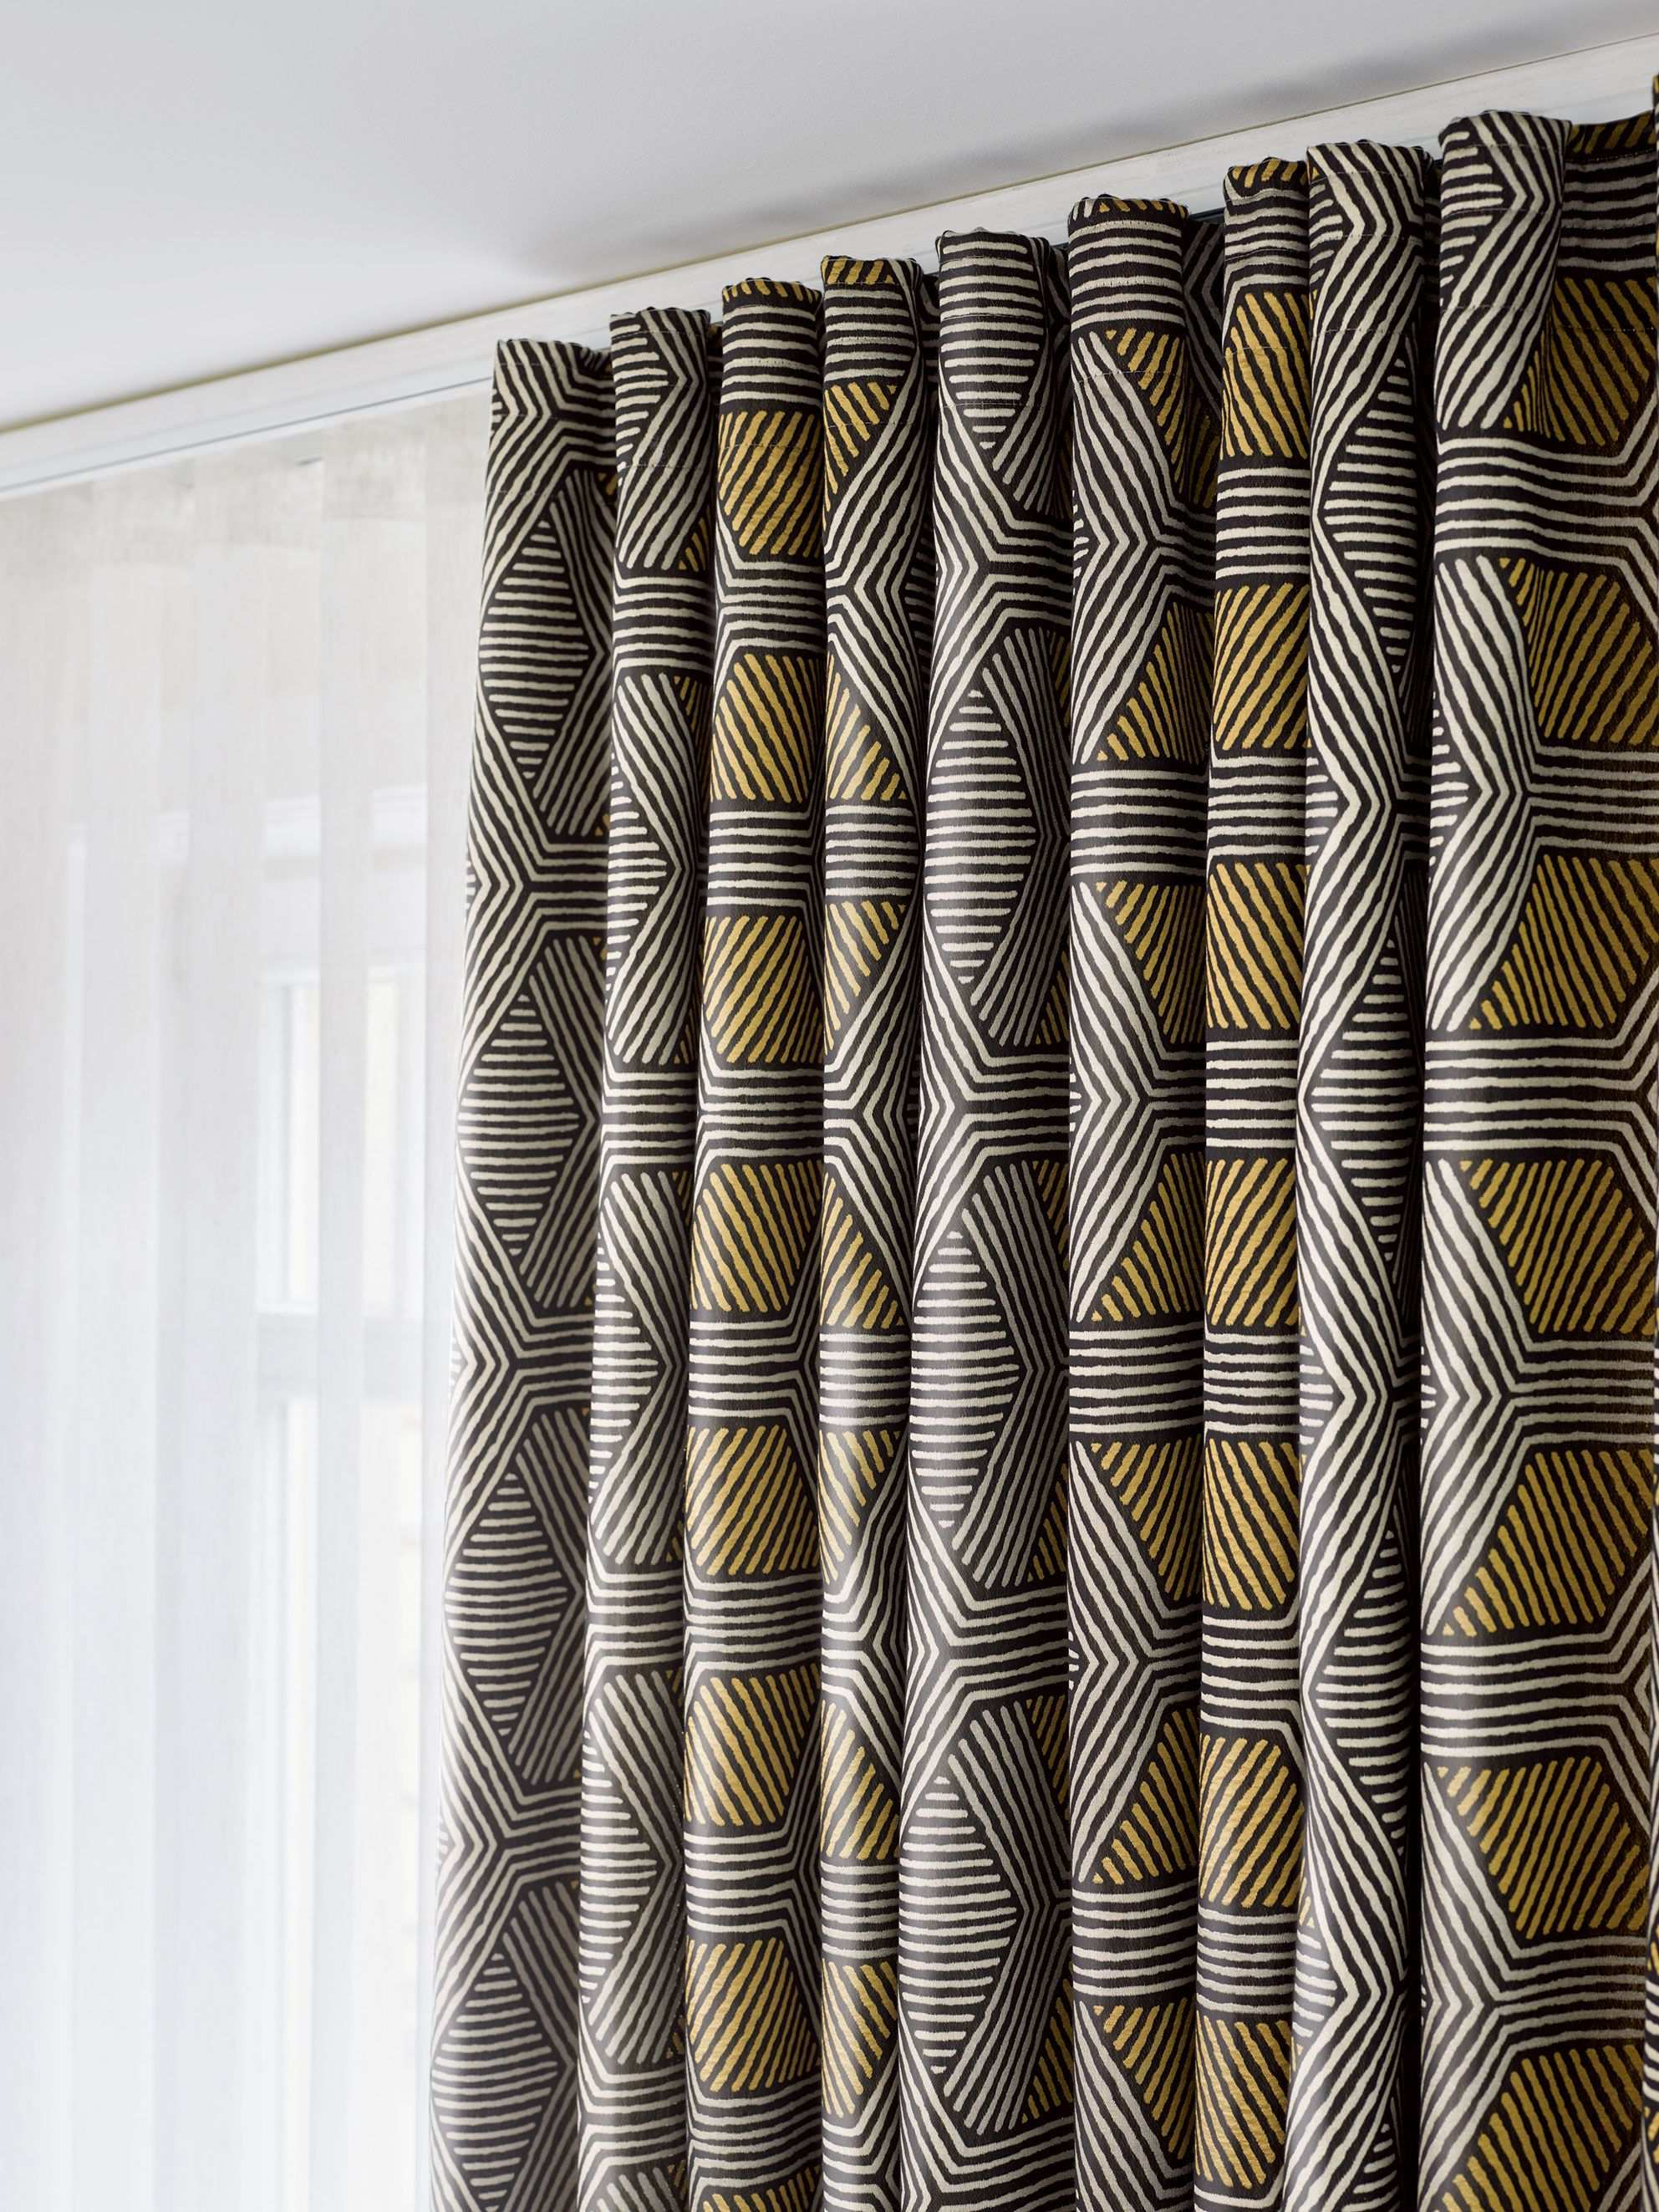 Ado Goldkante Knows How To Set A Highlight In Your Home With Its Geometrical Design This Fabric Expresses A Quirky Bu Gardinen Polsterstoffe Fensterdekoration